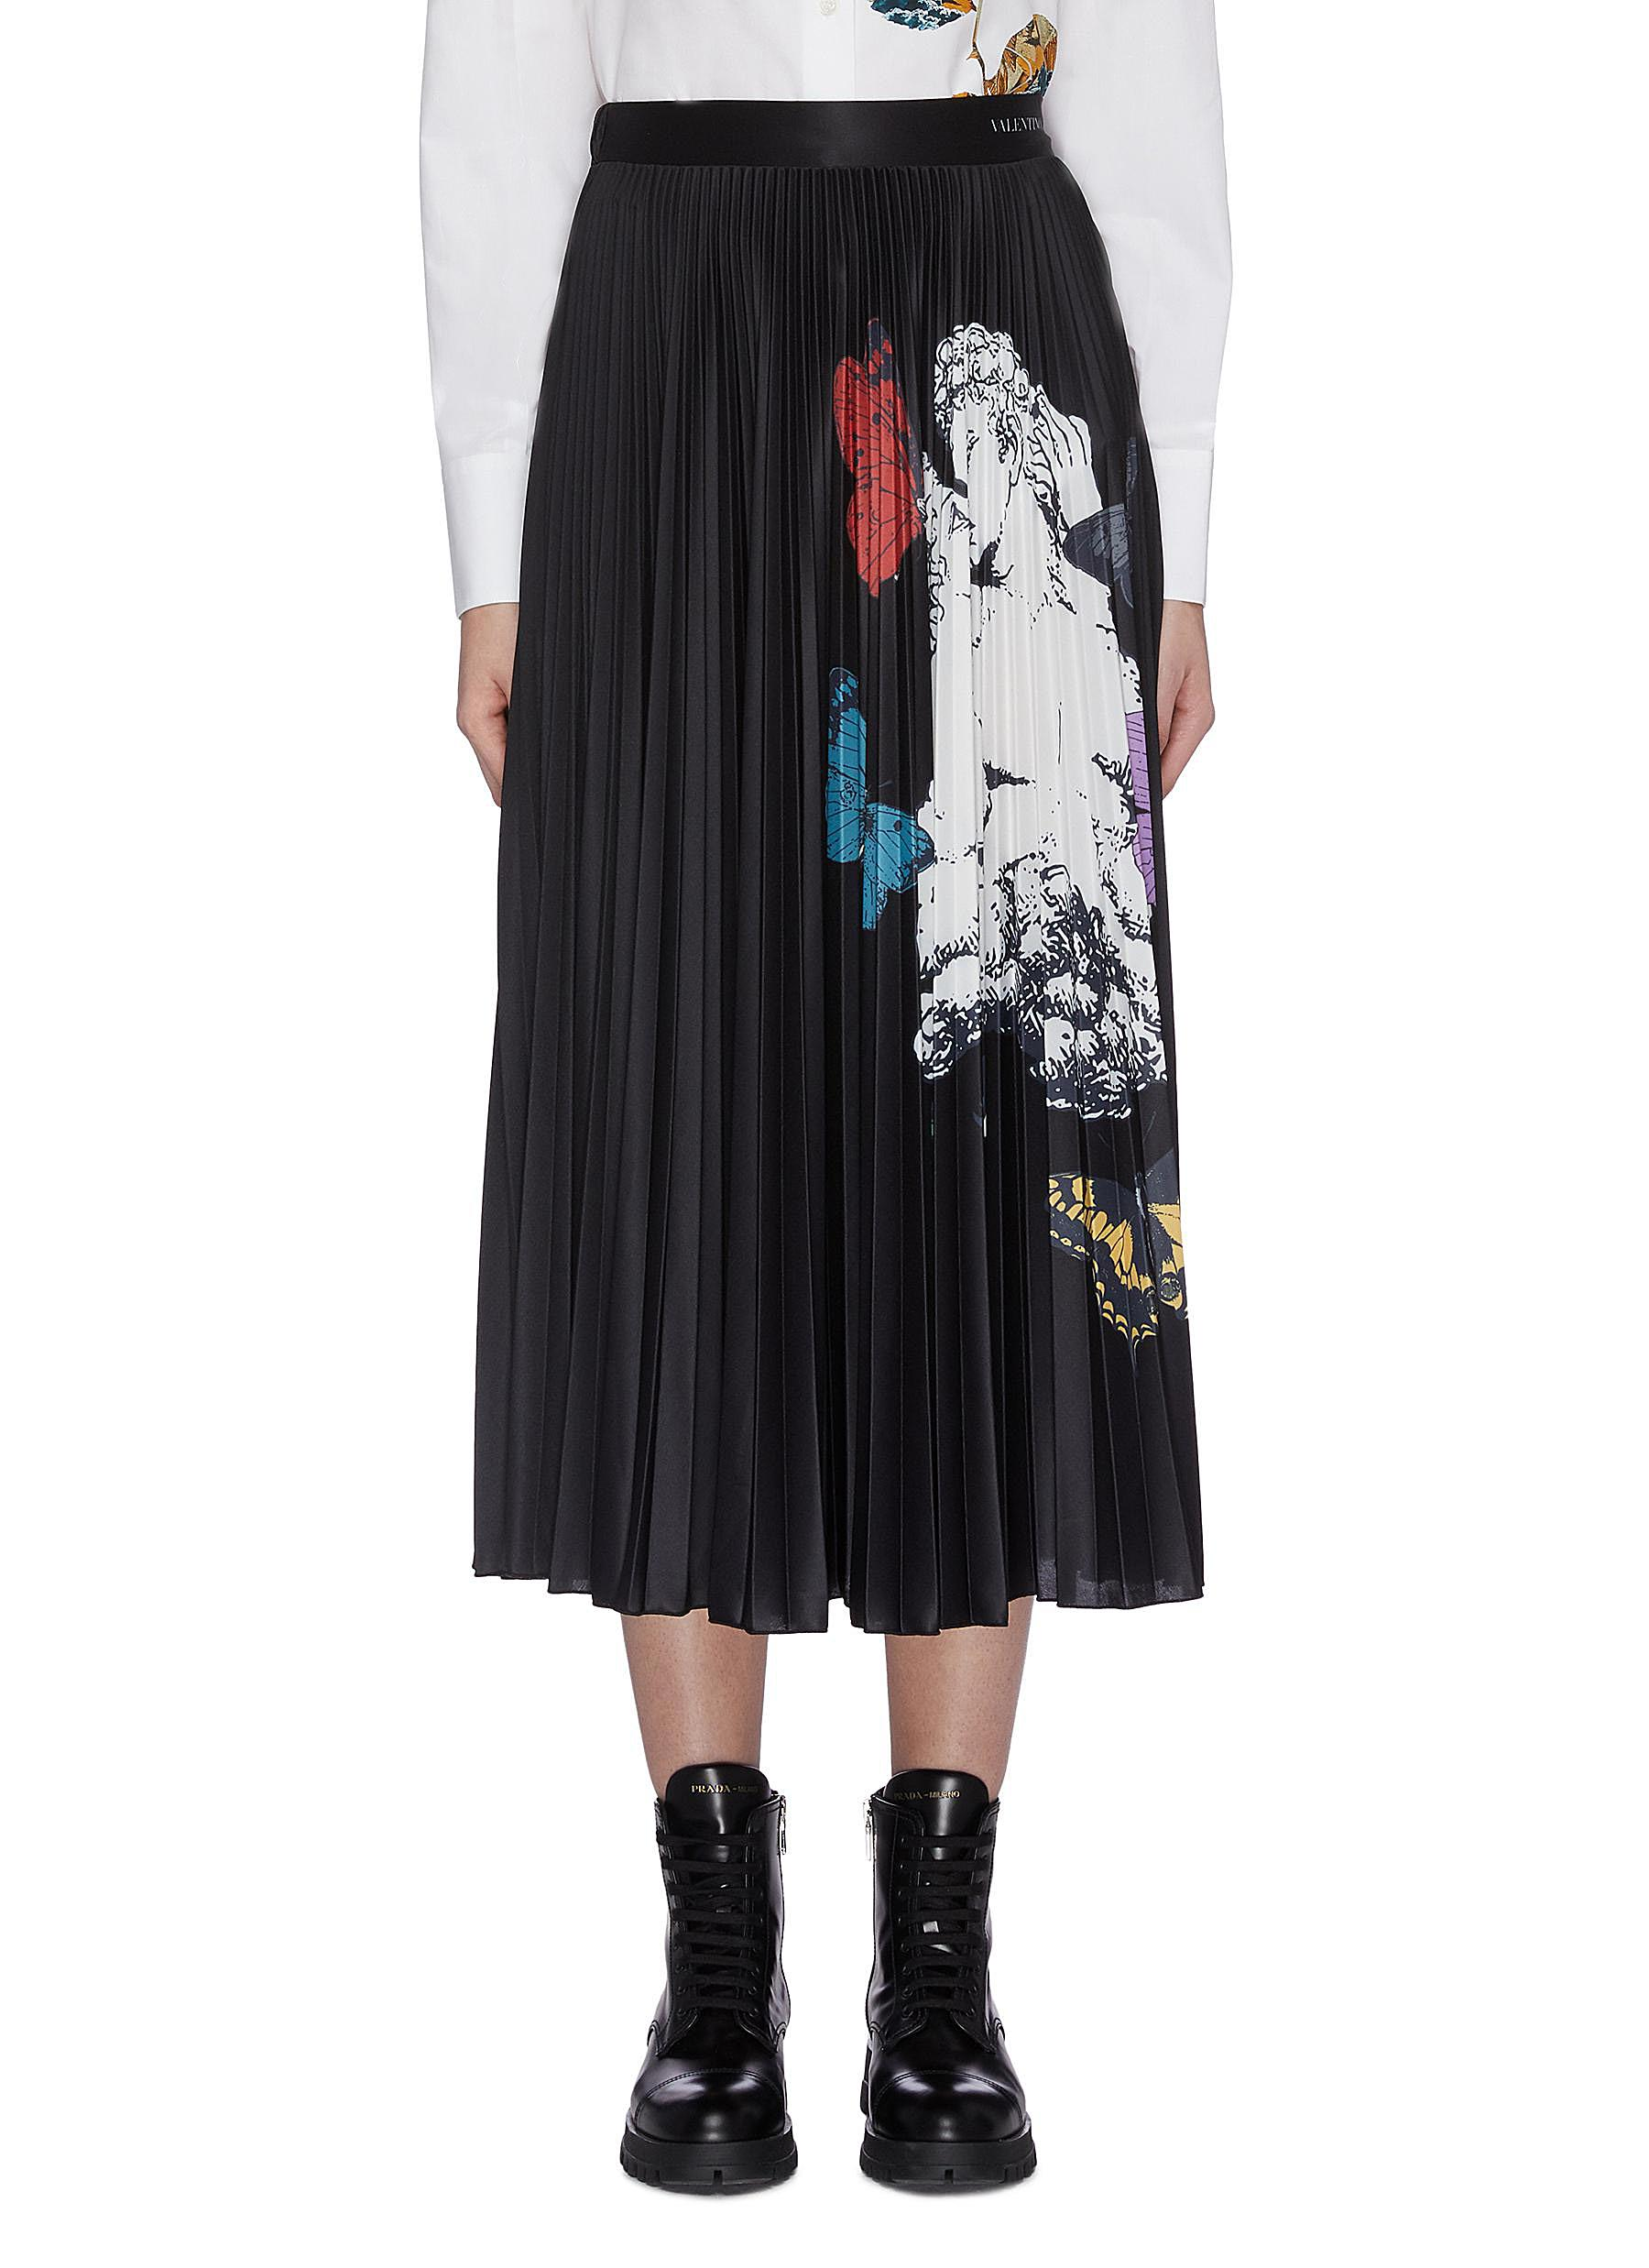 Lovers print pleated skirt by Valentino